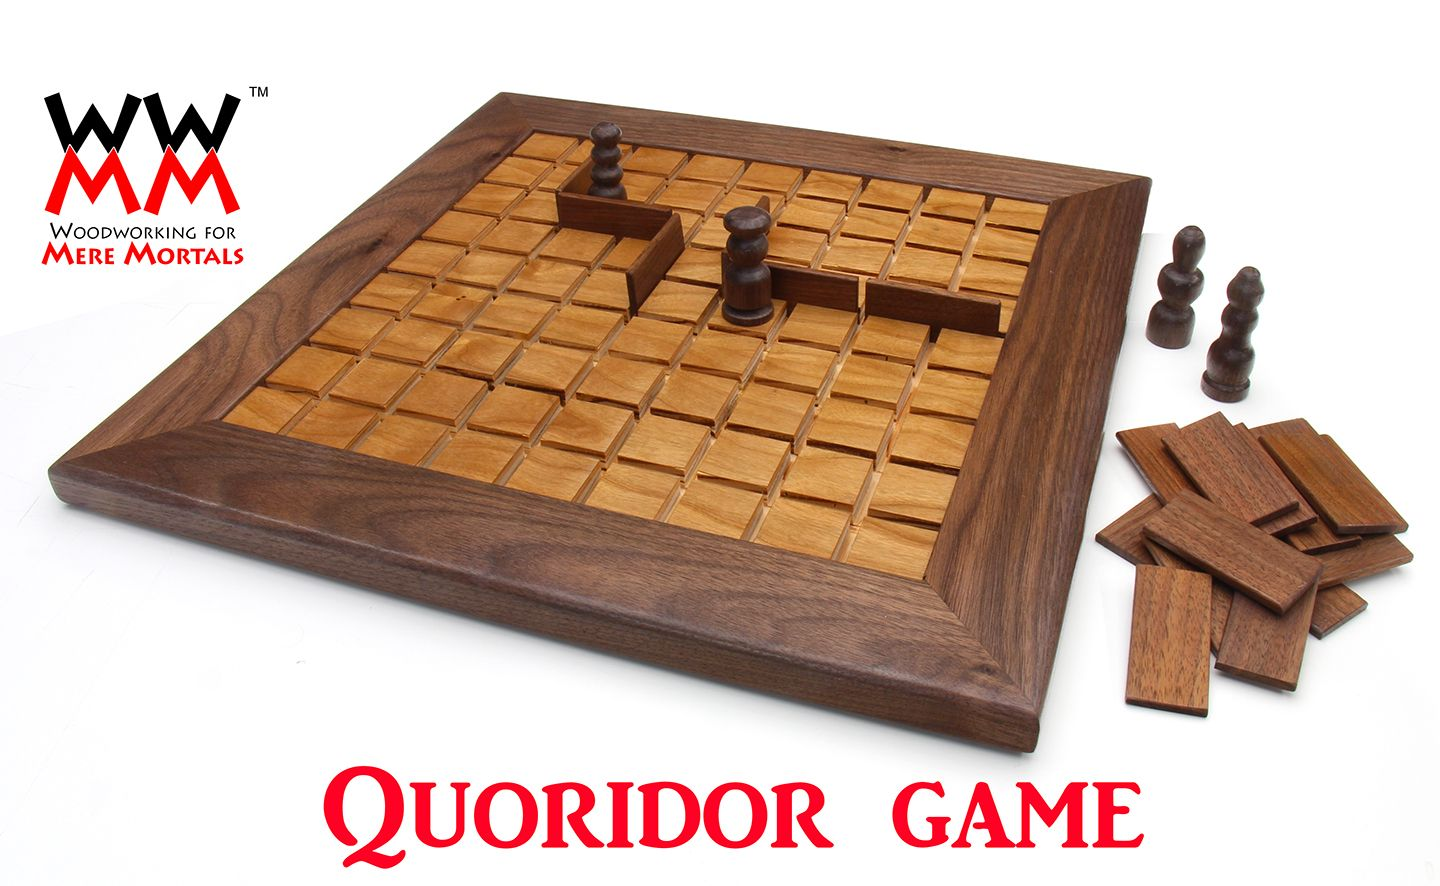 Make A Quoridor Game Woodworking For Mere Mortals Wooden Board Games Woodworking For Mere Mortals Wood Games